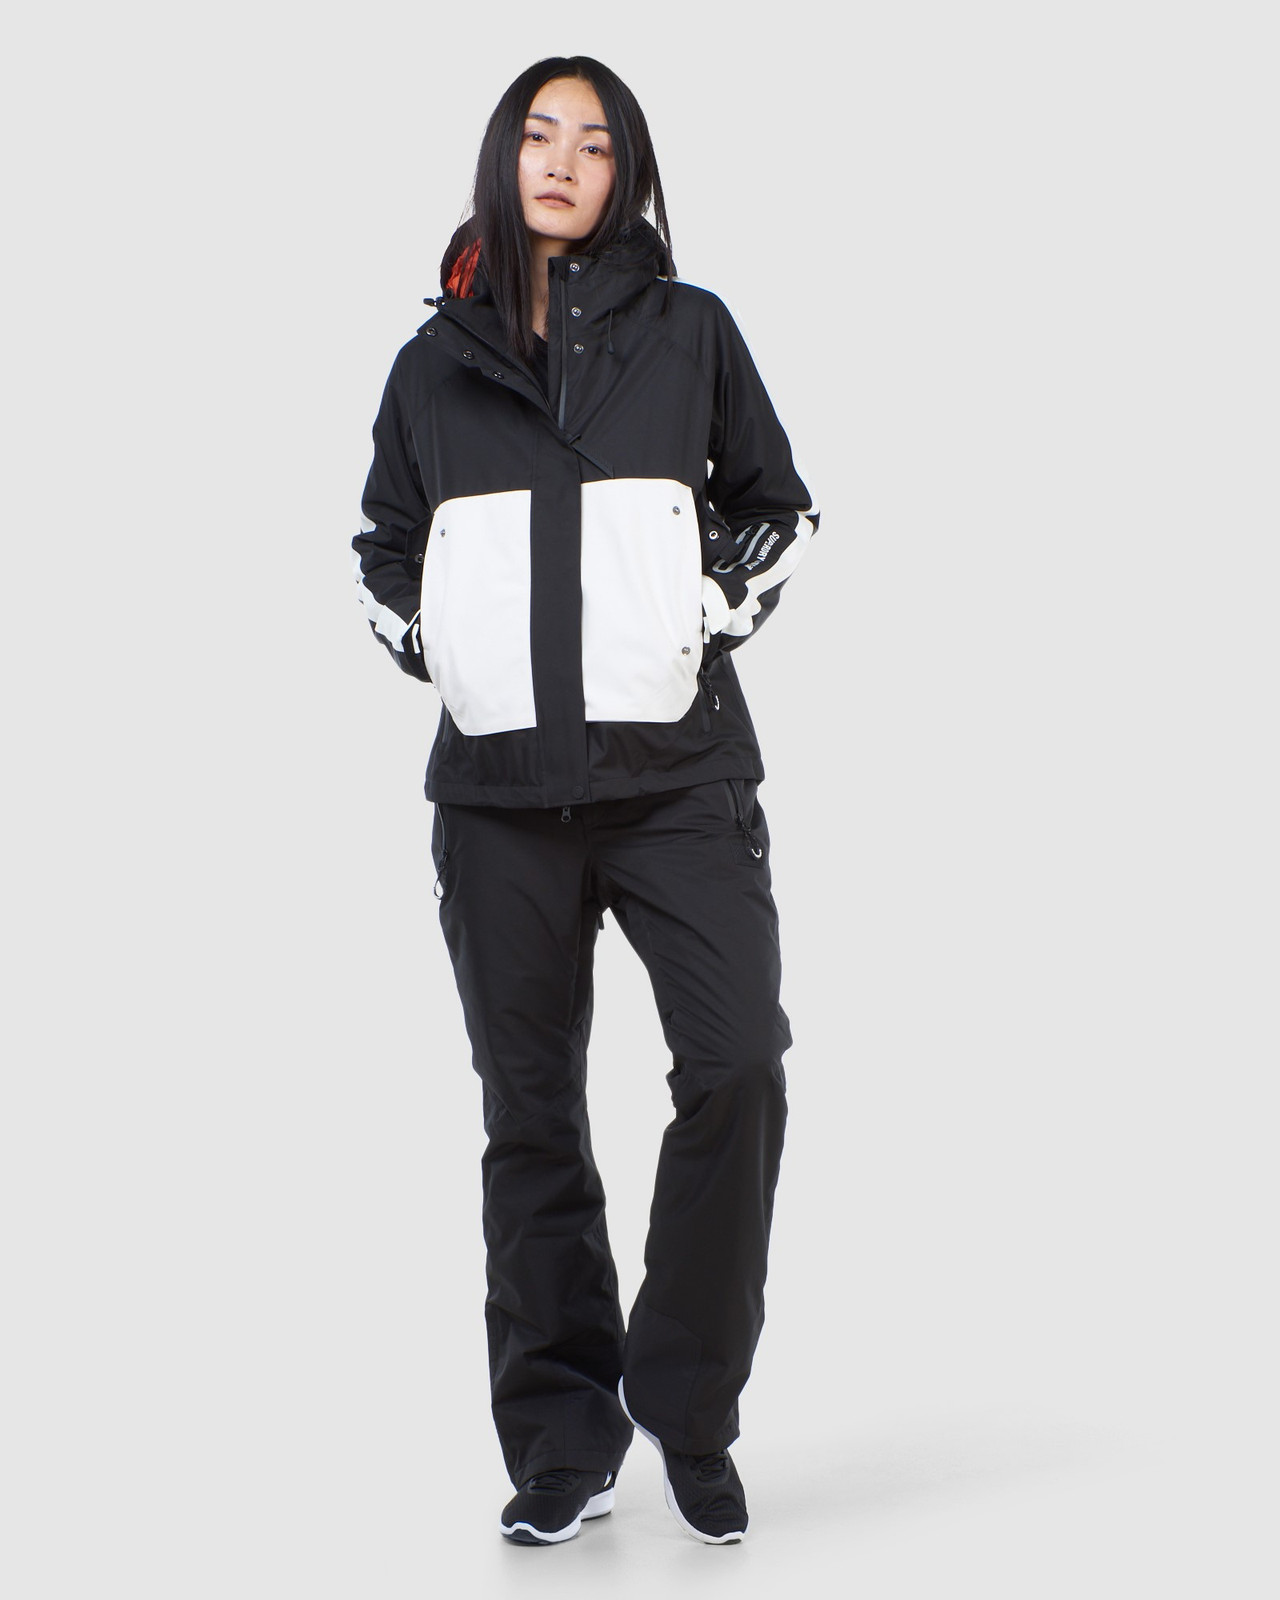 Superdry Womens FREESTYLE ATTACK JACKET Black Snow Jackets 1